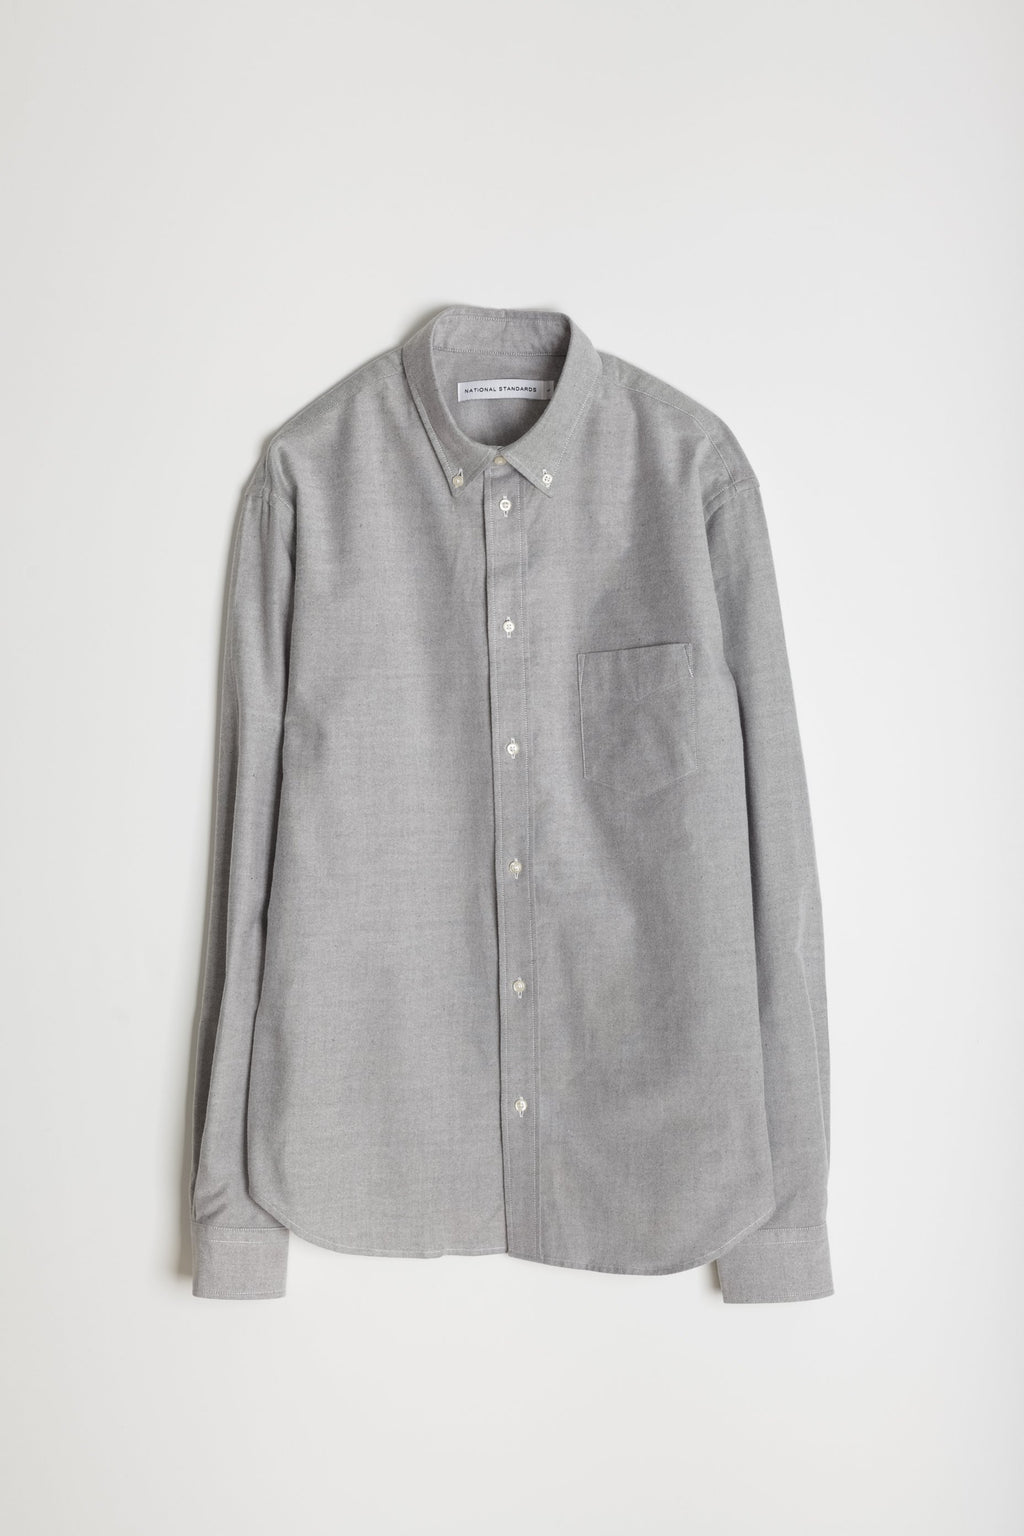 Japanese Supima Brushed Oxford in Grey 06